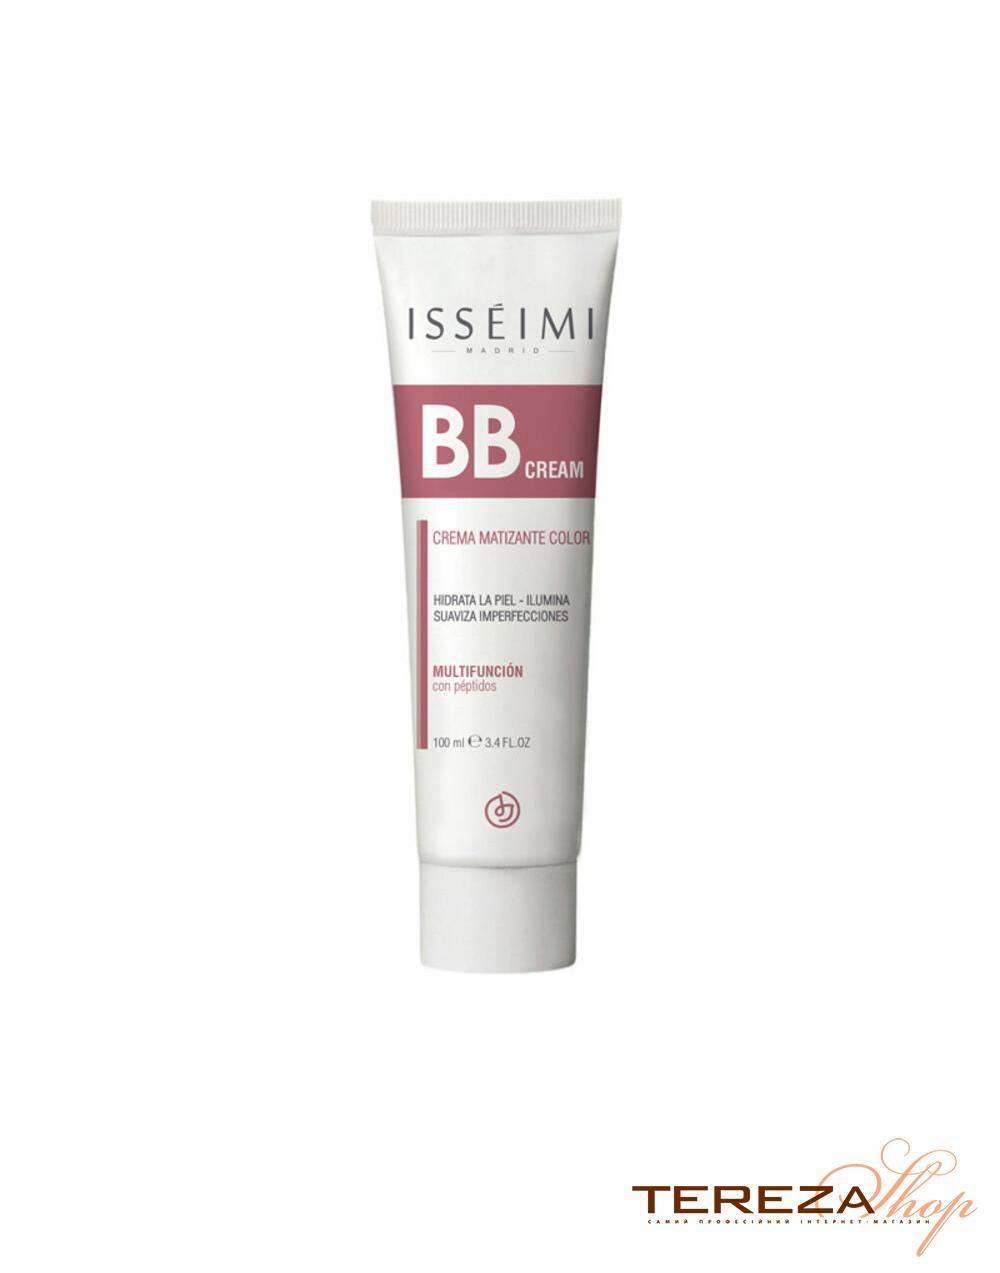 BB CREAM ISSEIMI | Tereza Shop